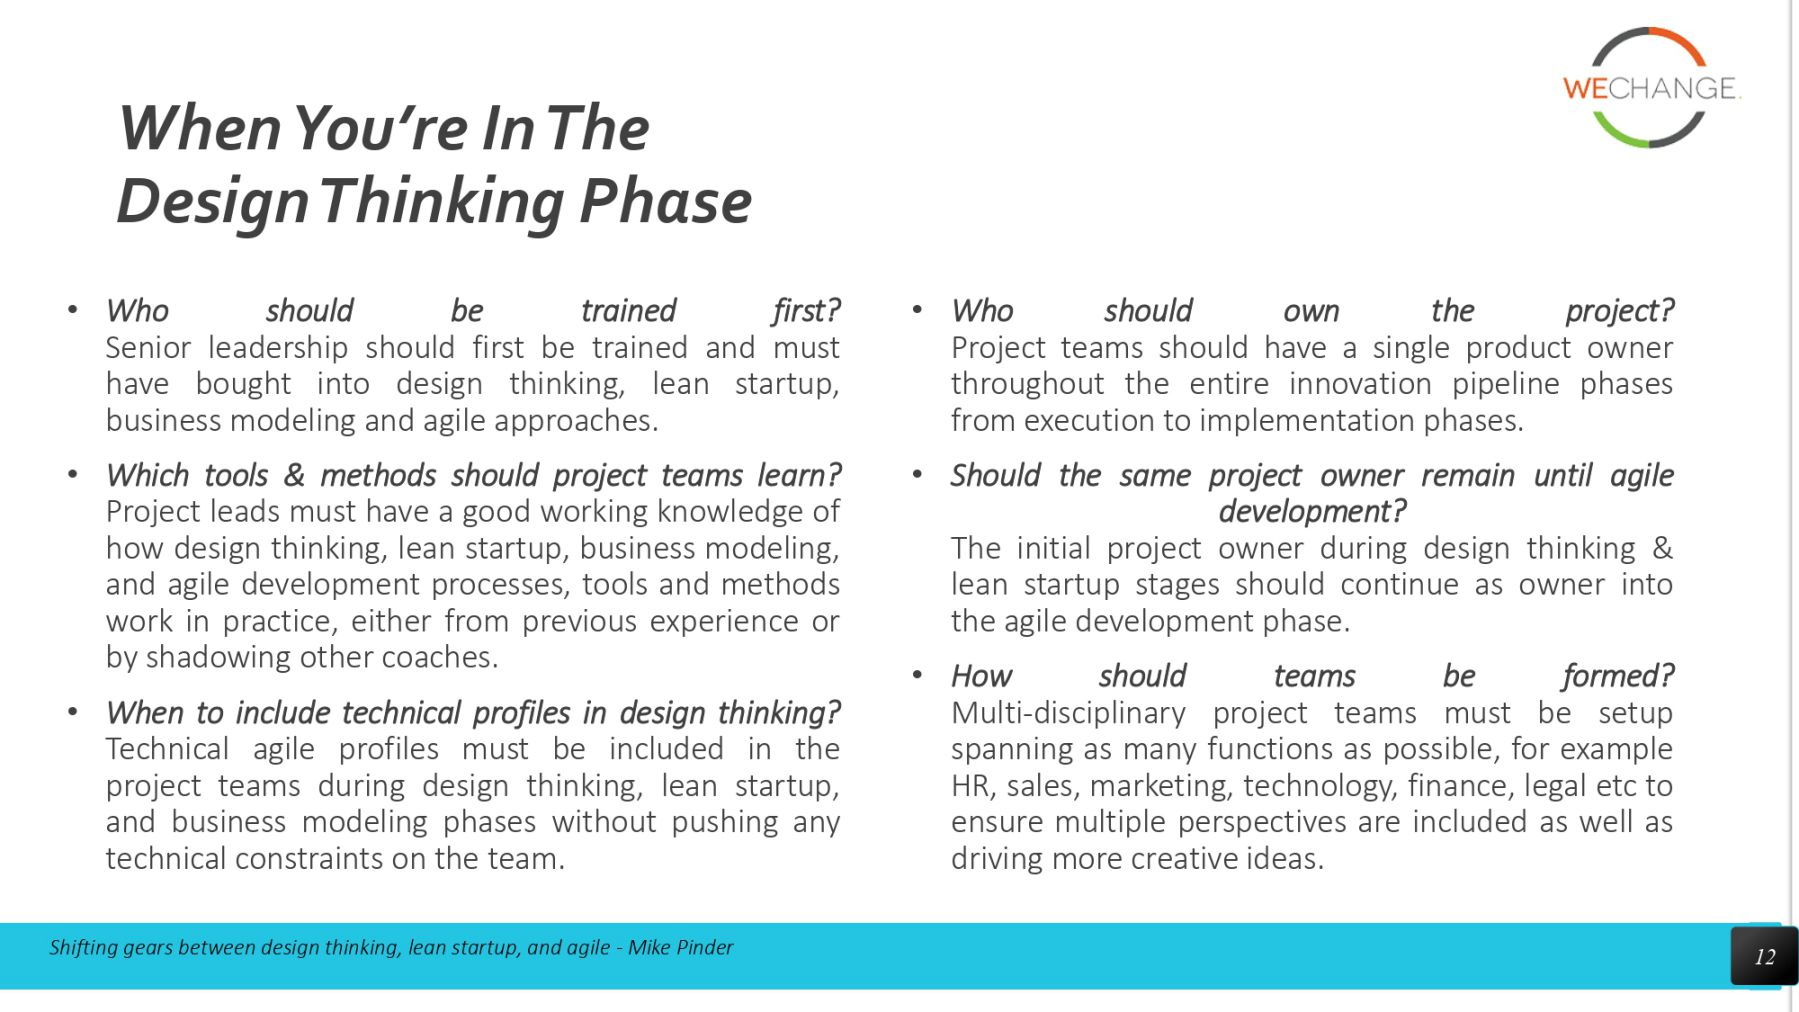 Design thinking lean startup and agile page 0011 compressed Design thinking lean startup and agile